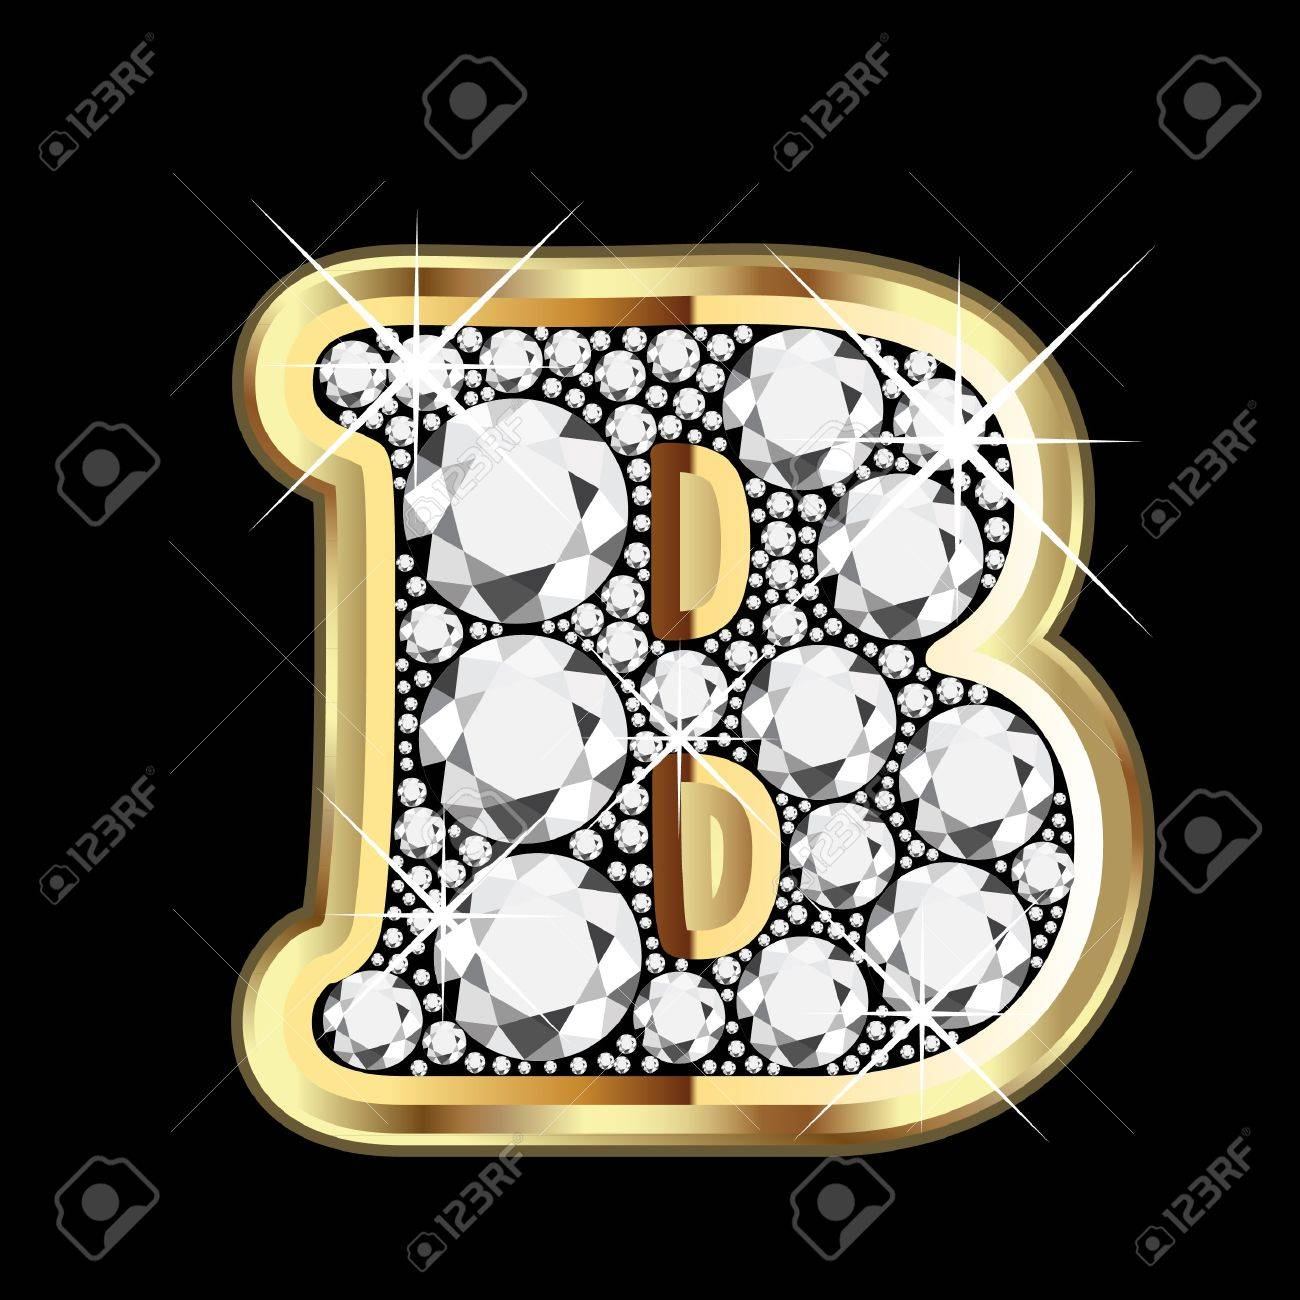 B gold and diamond bling Stock Vector - 14945994